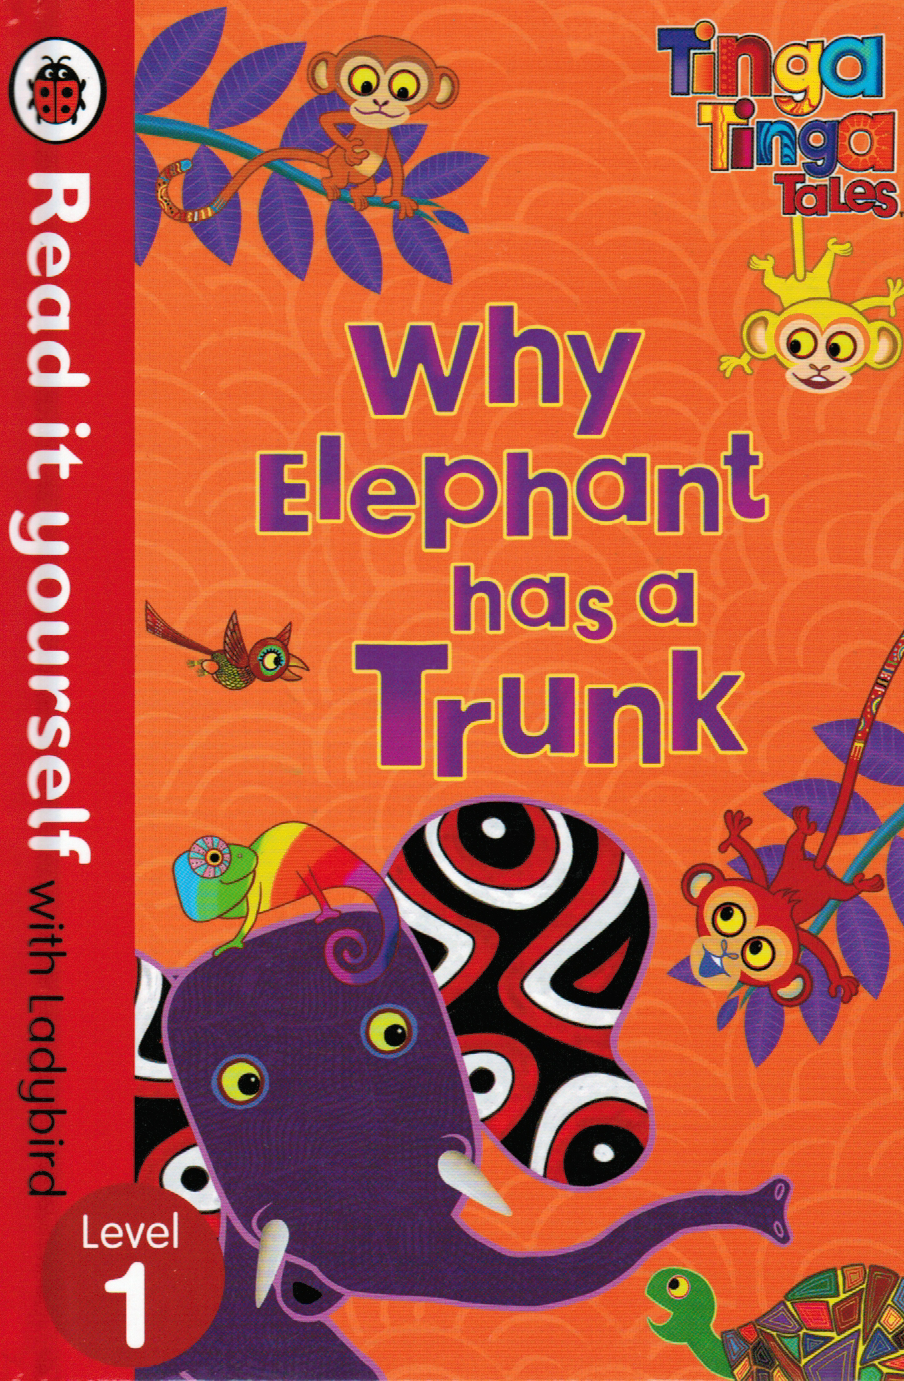 R.I.Y.1 - TINGA TINGA TALES: WHY ELEPHANT HAS A TRUNK